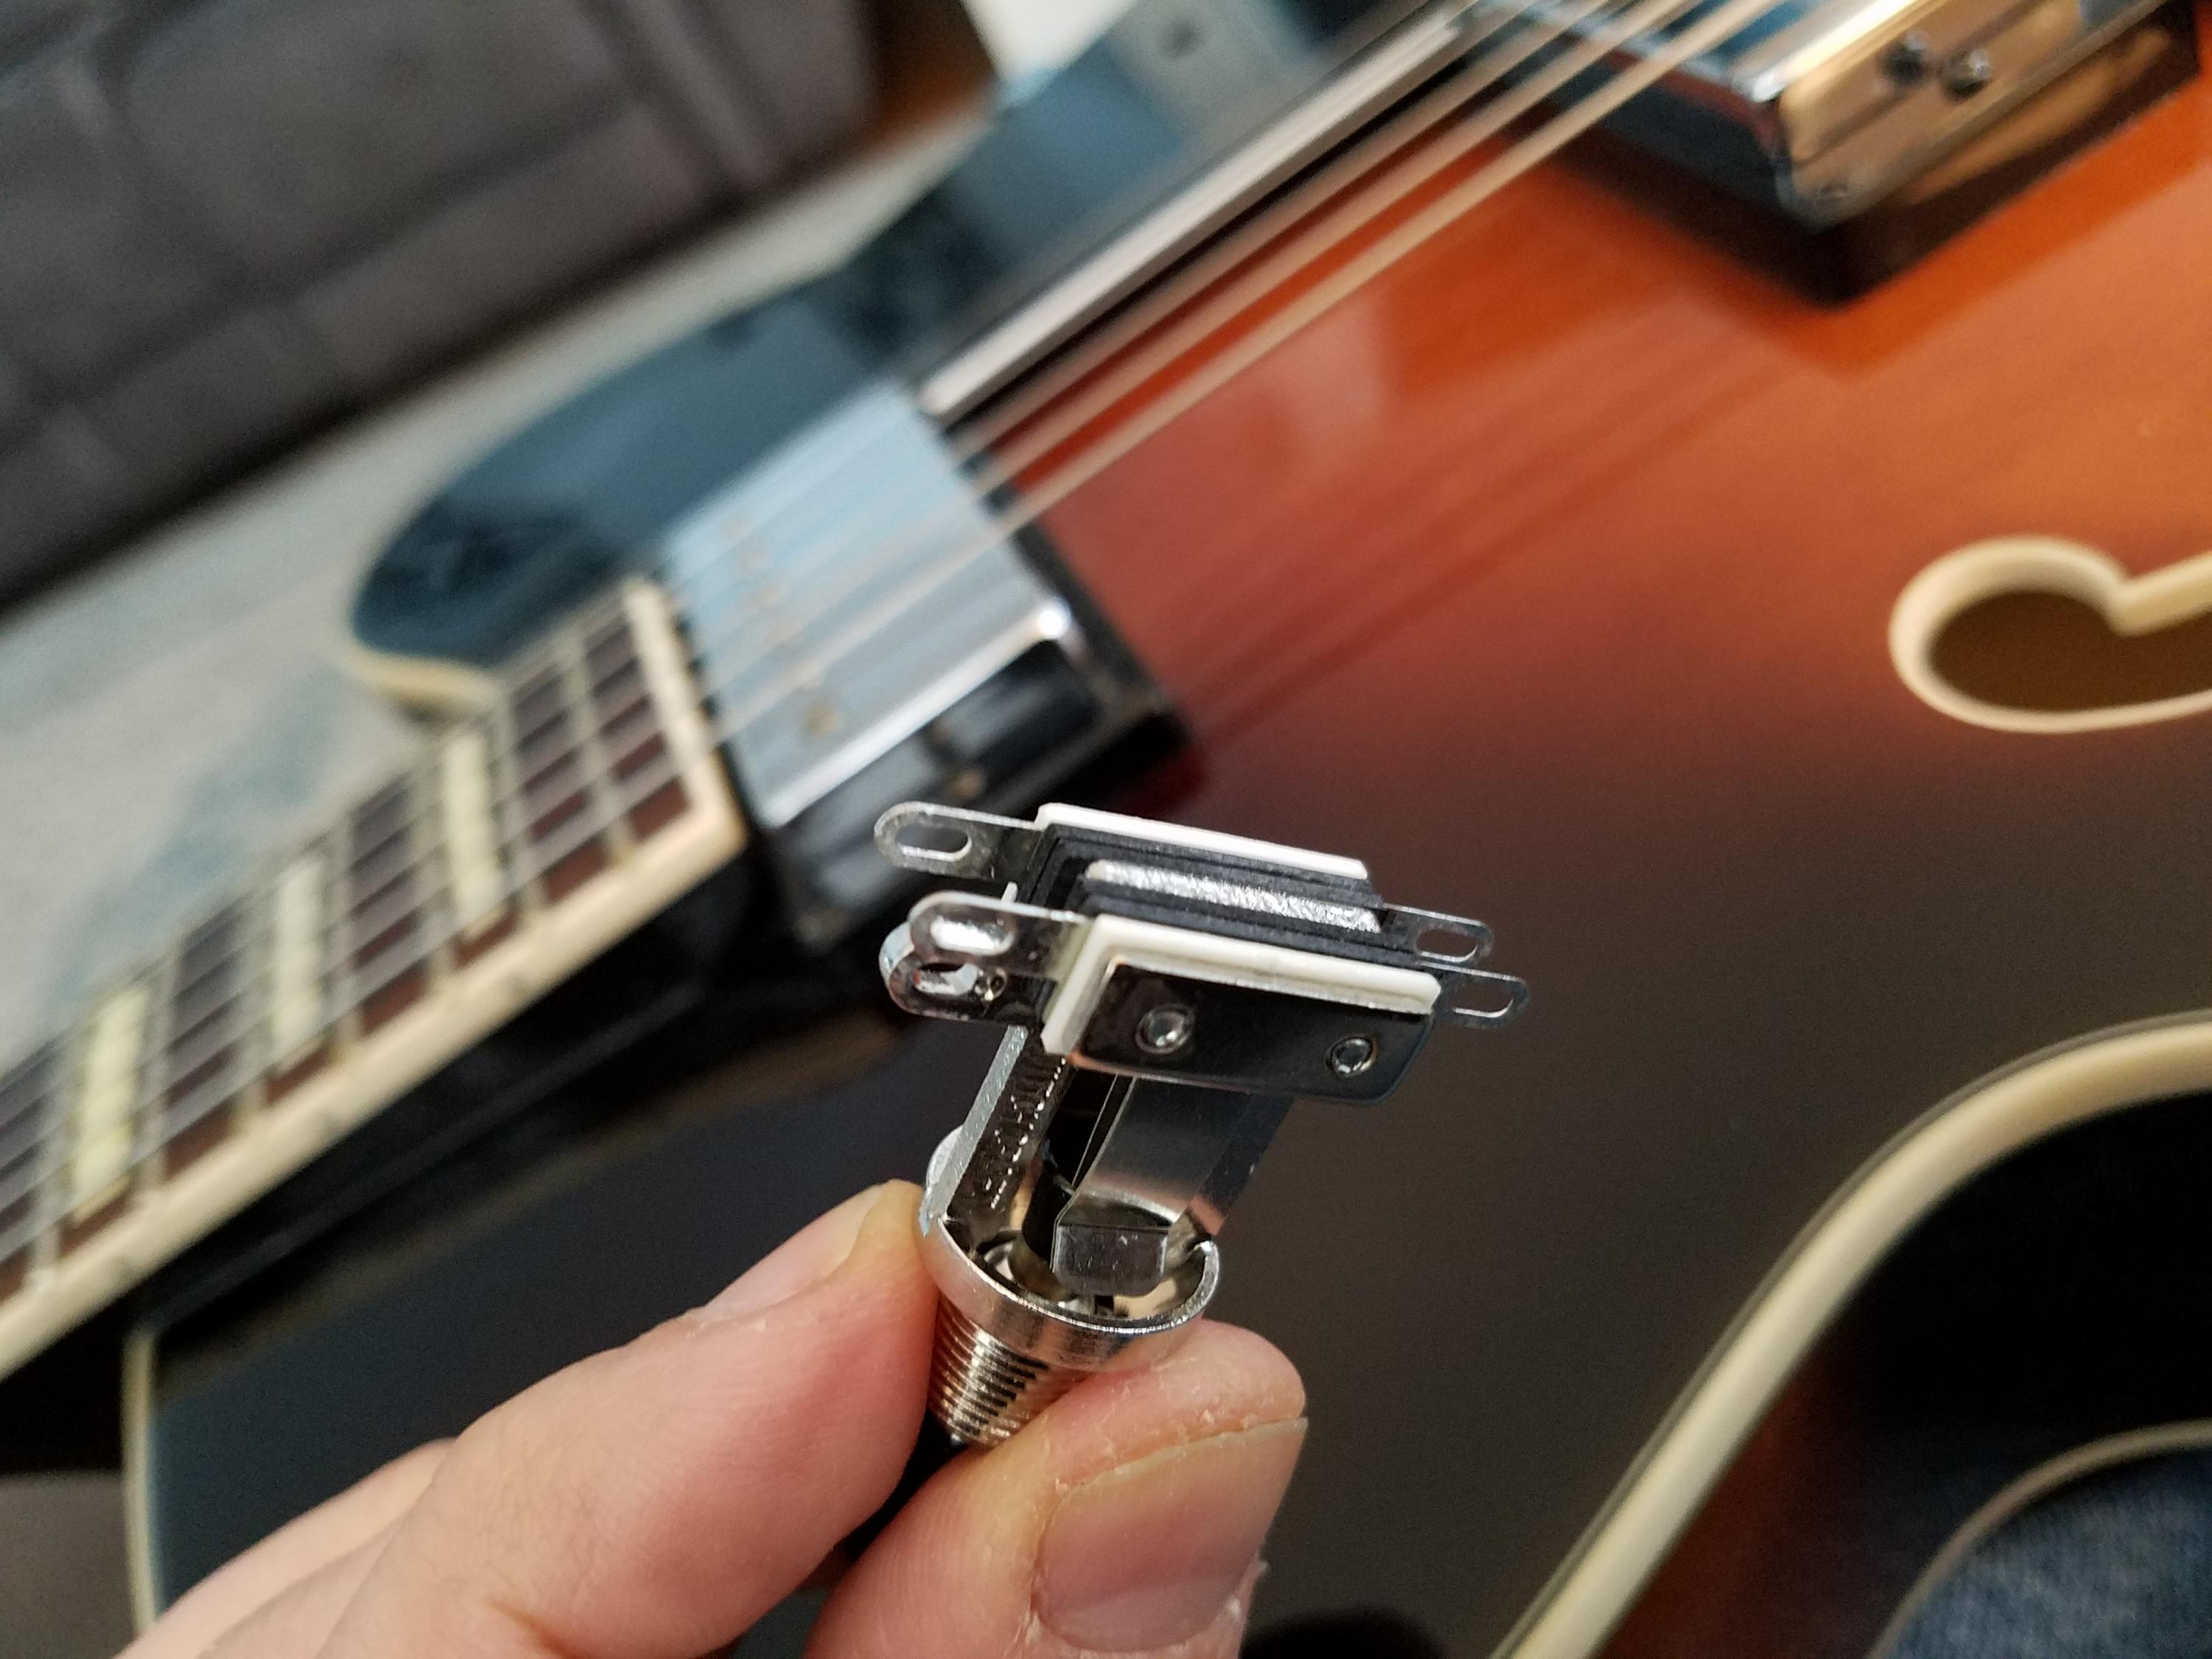 AF75 Neck Pickup Not Working-16137567310119007167158650004481-jpg